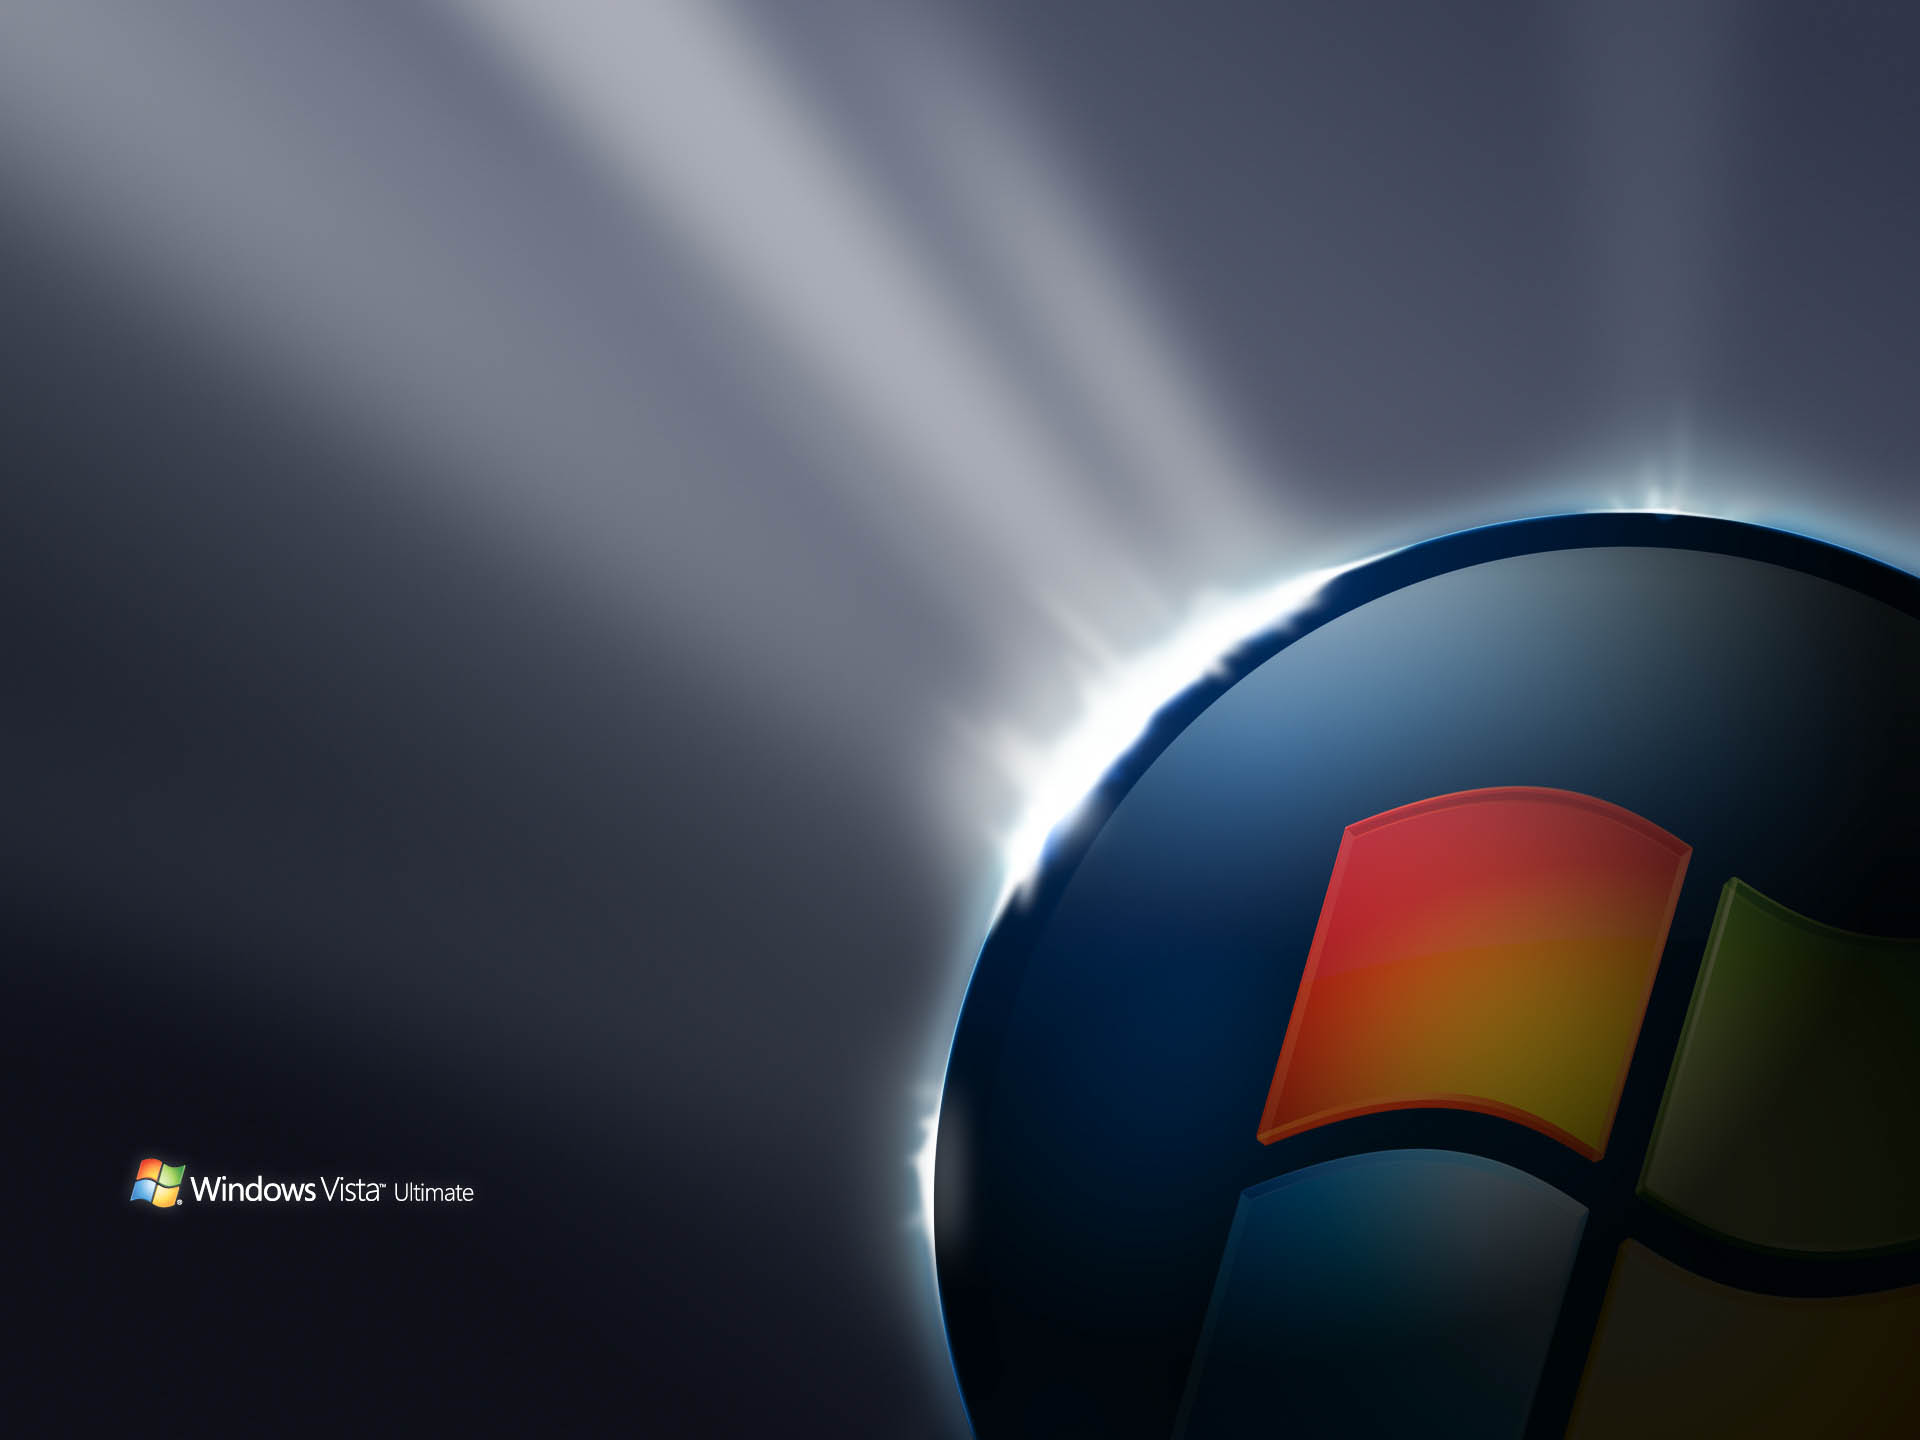 Windows Vista Awesome HD Wallpapers - All HD Wallpapers